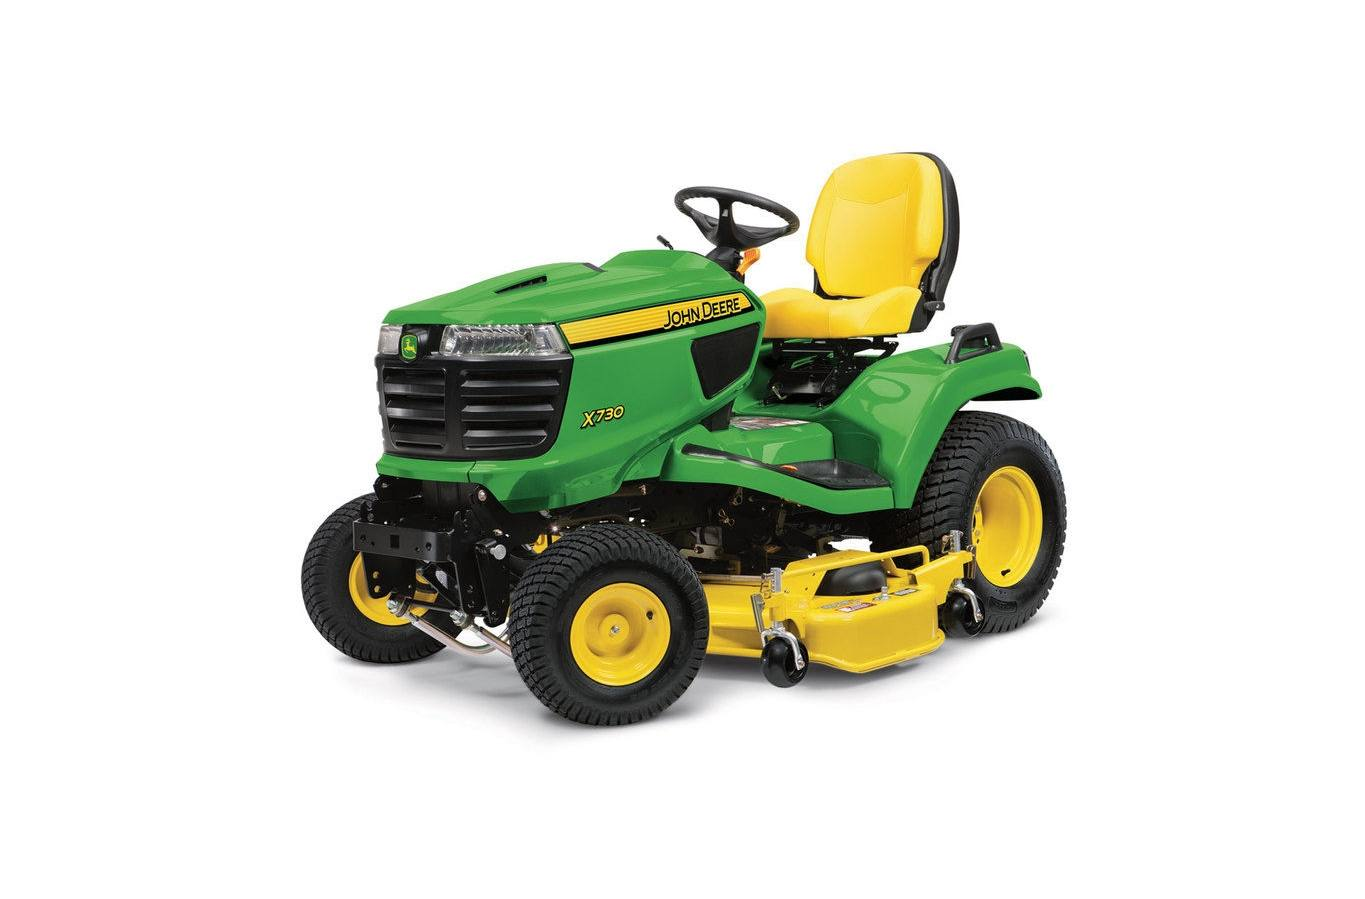 2018 John Deere X730 For Sale In London Oh Jd Equipment Inc Walk Behind Mower Wiring Diagram